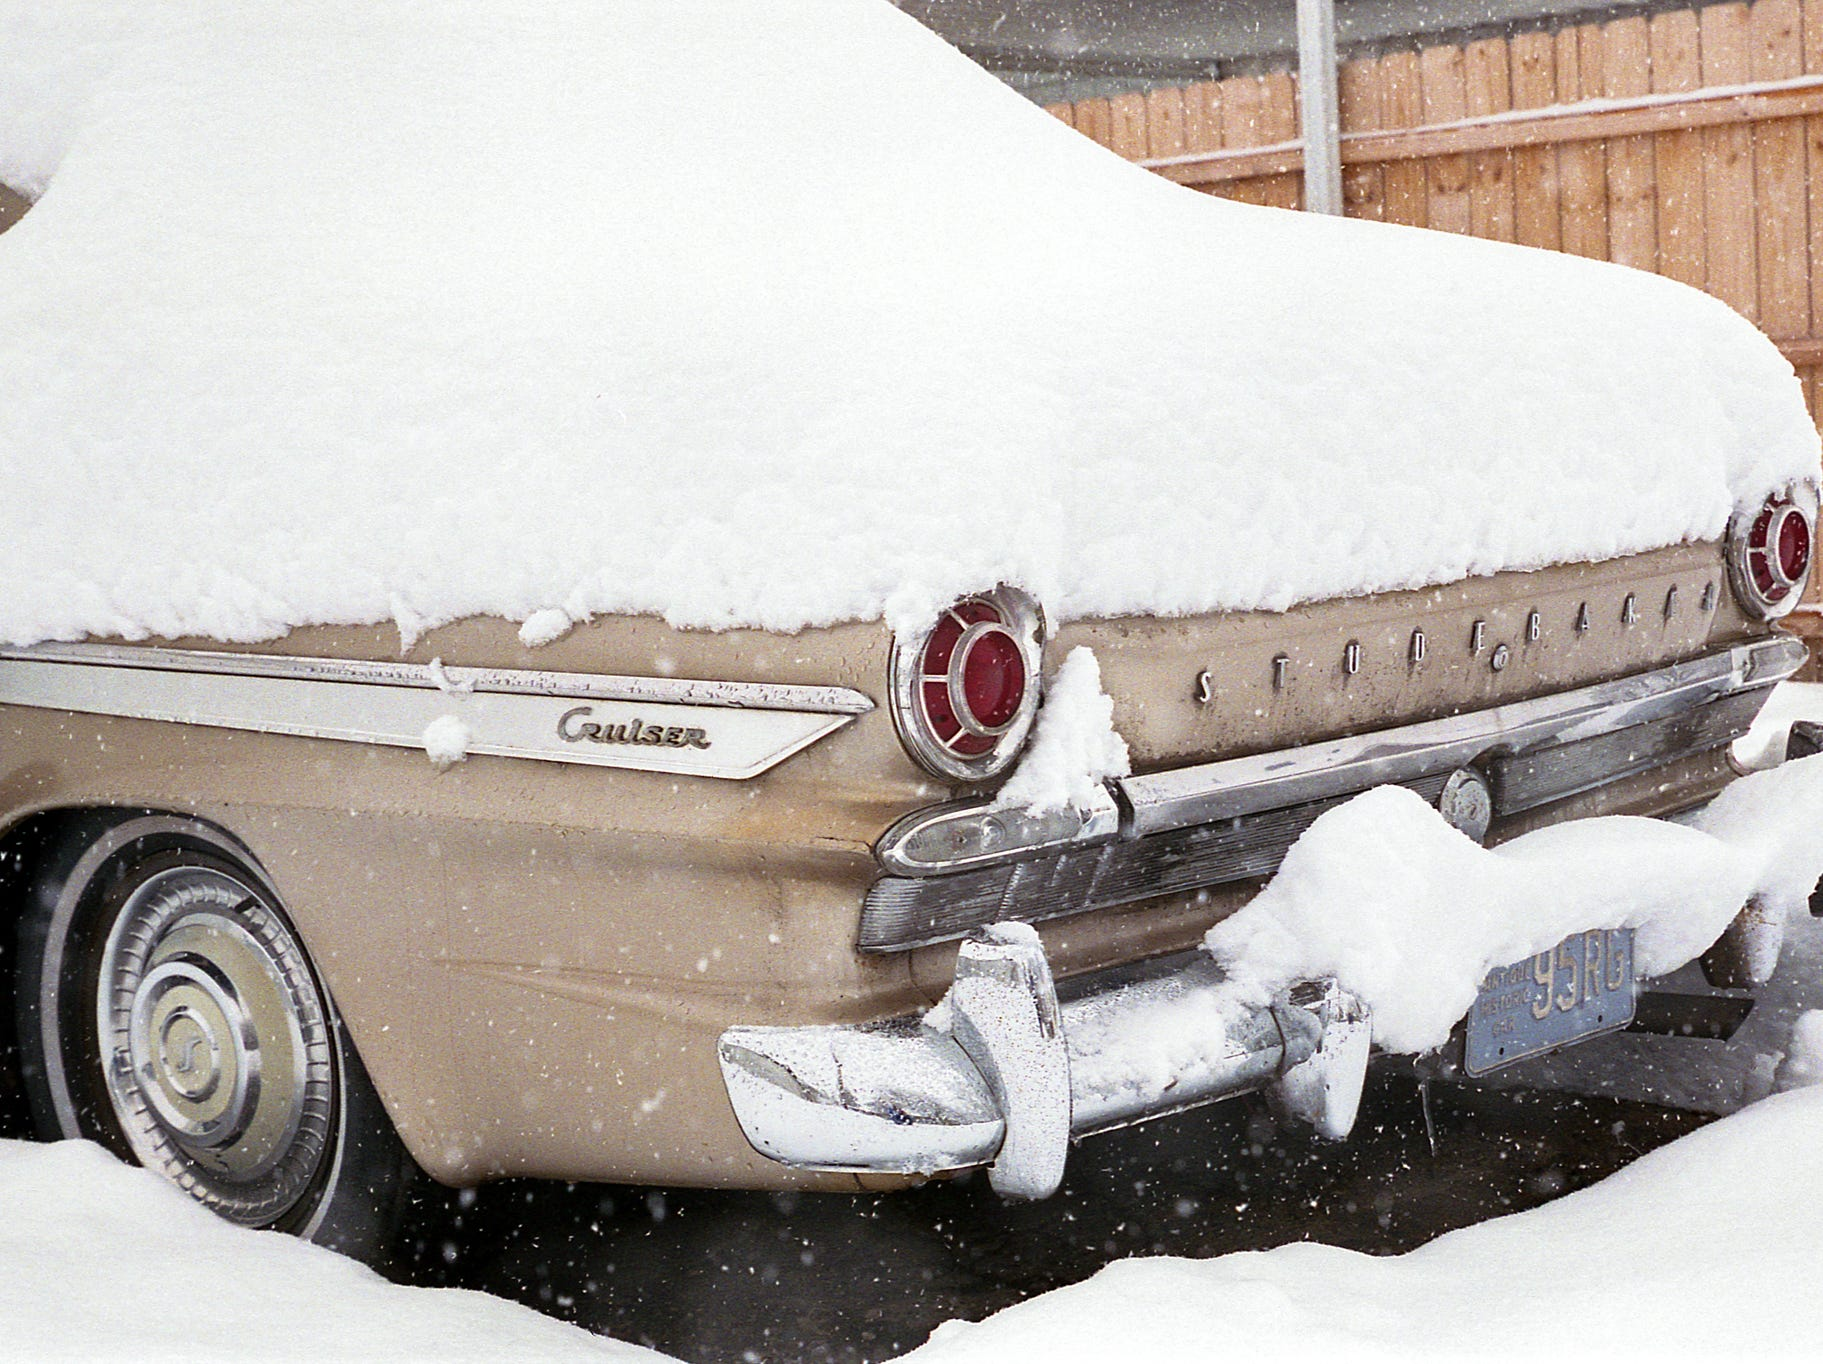 An old Studebaker on a snowy day. [Nikon F100] [Agfa Vista 400]